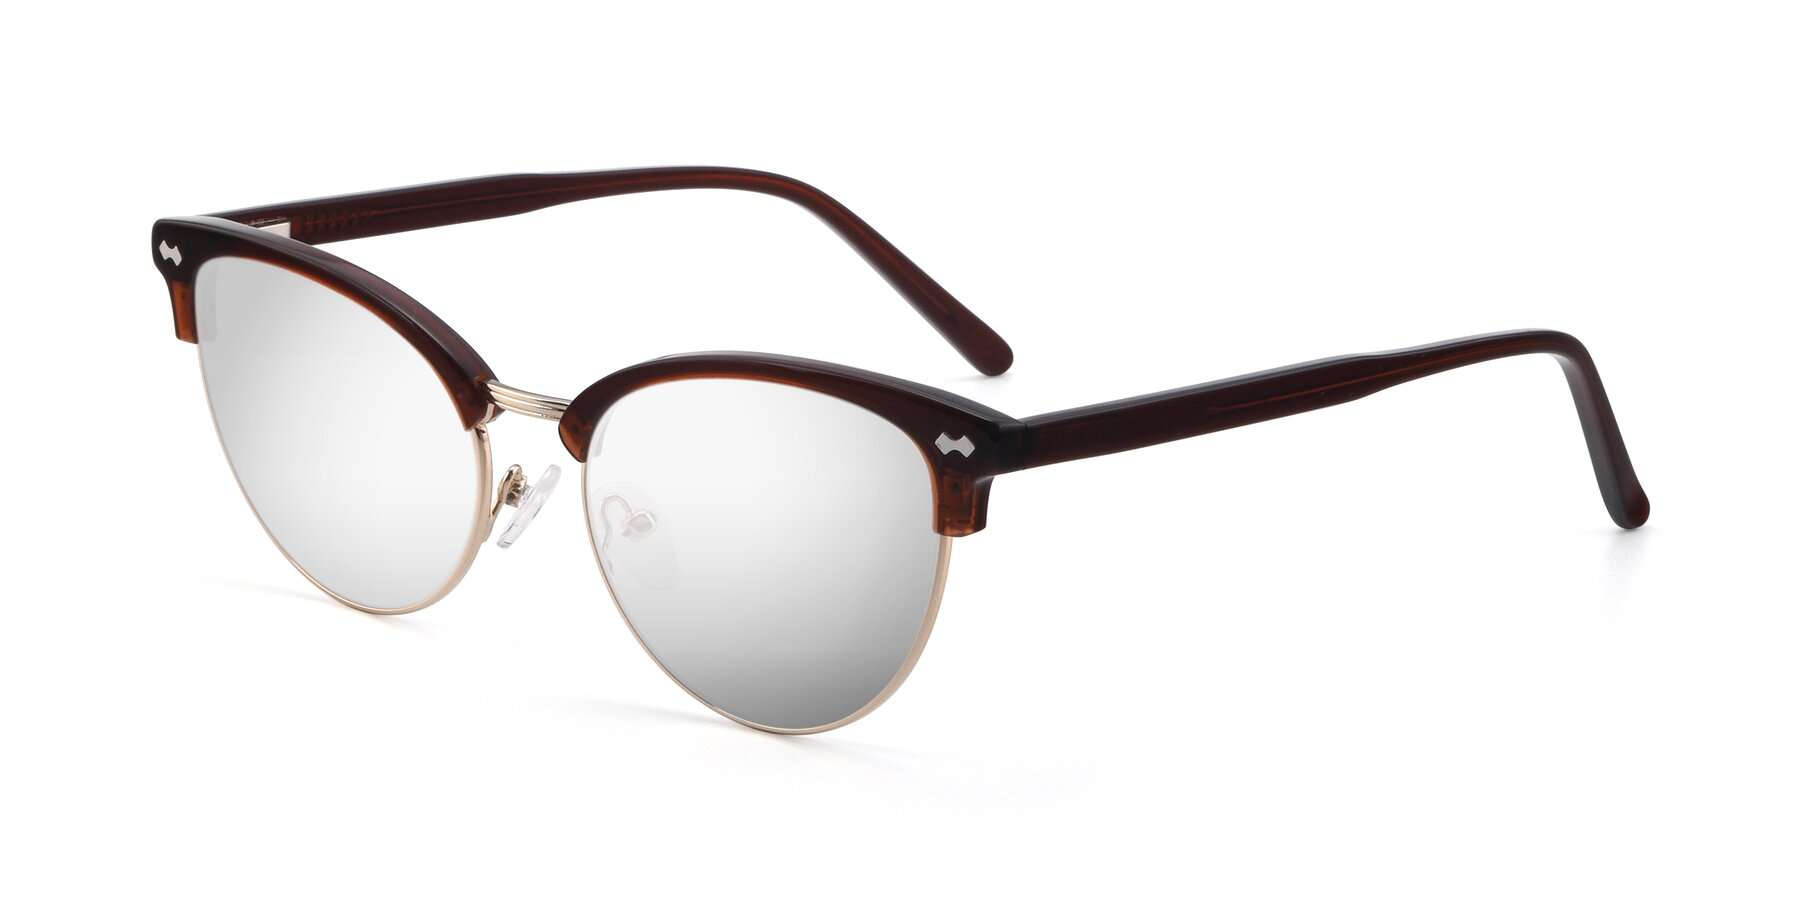 Angle of 17461 in Tortoise-Black with Silver Mirrored Lenses